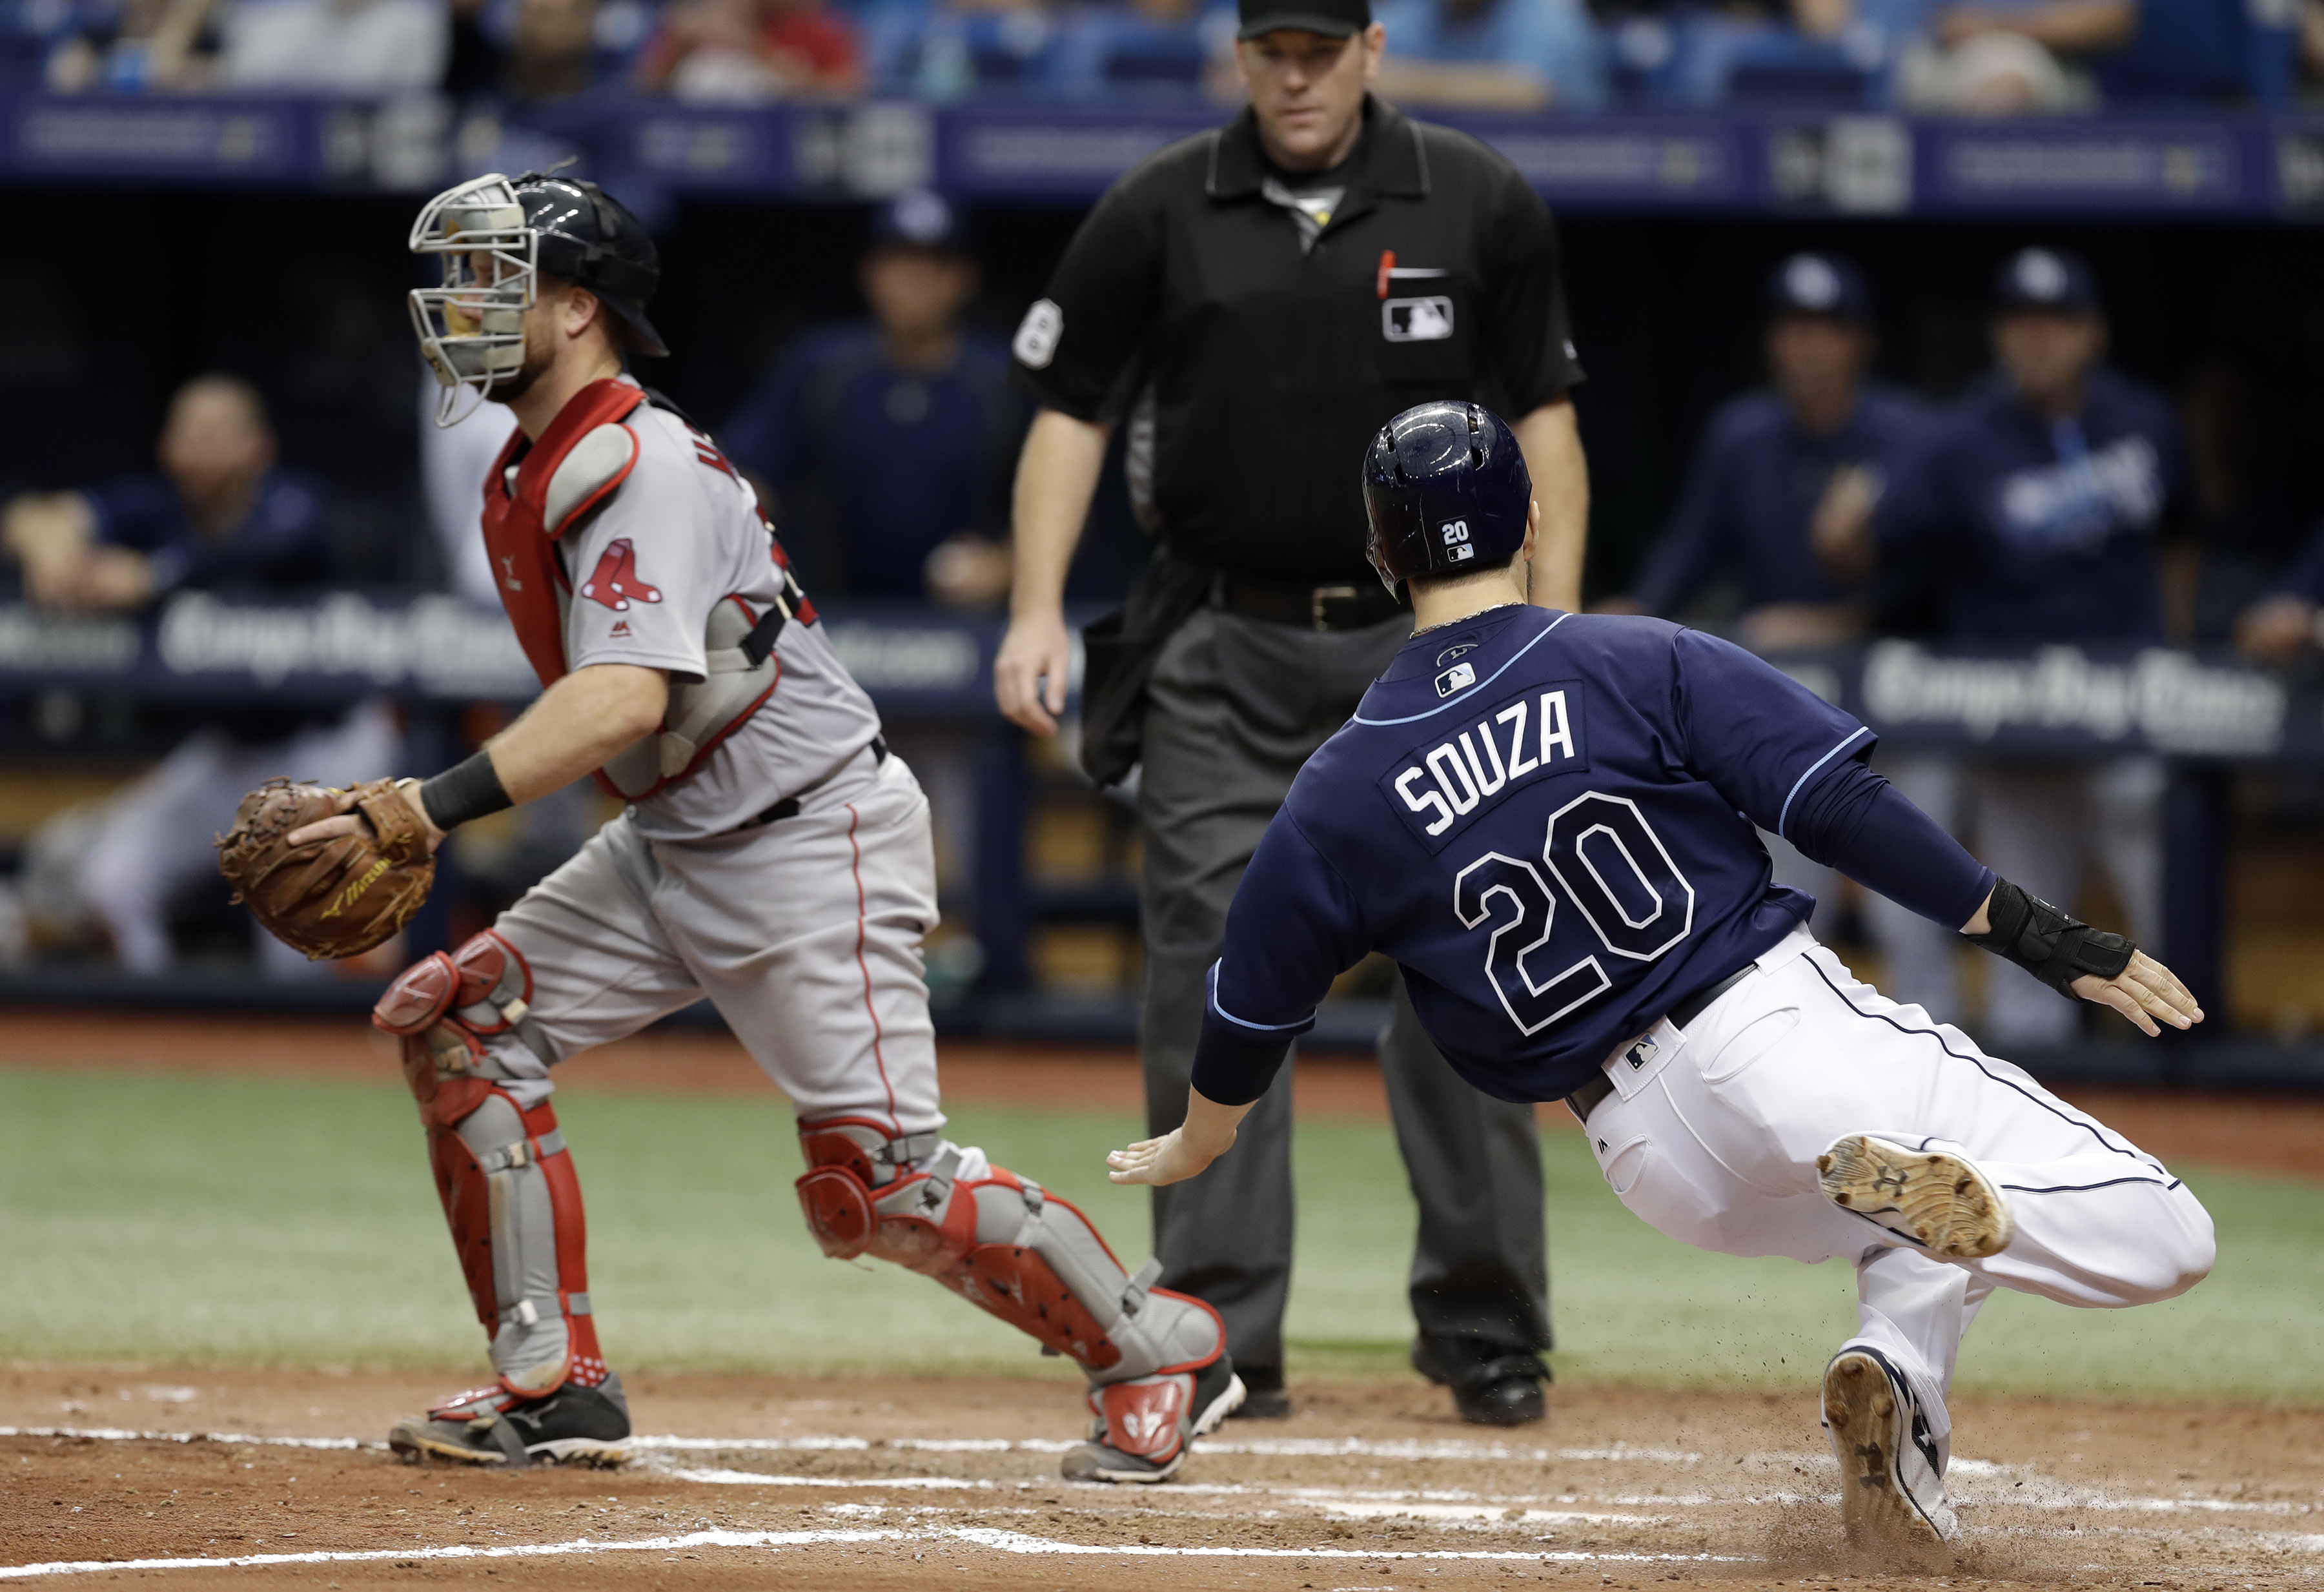 Tampa Bay Rays' Steven Souza Jr. (20) slides home safely on a double by Mikie Mahtook as Boston Red Sox catcher Bryan Holaday waits for the throw during the seventh inning of a baseball game Thursday, Aug. 25, 2016, in St. Petersburg, Fla. The Rays won th